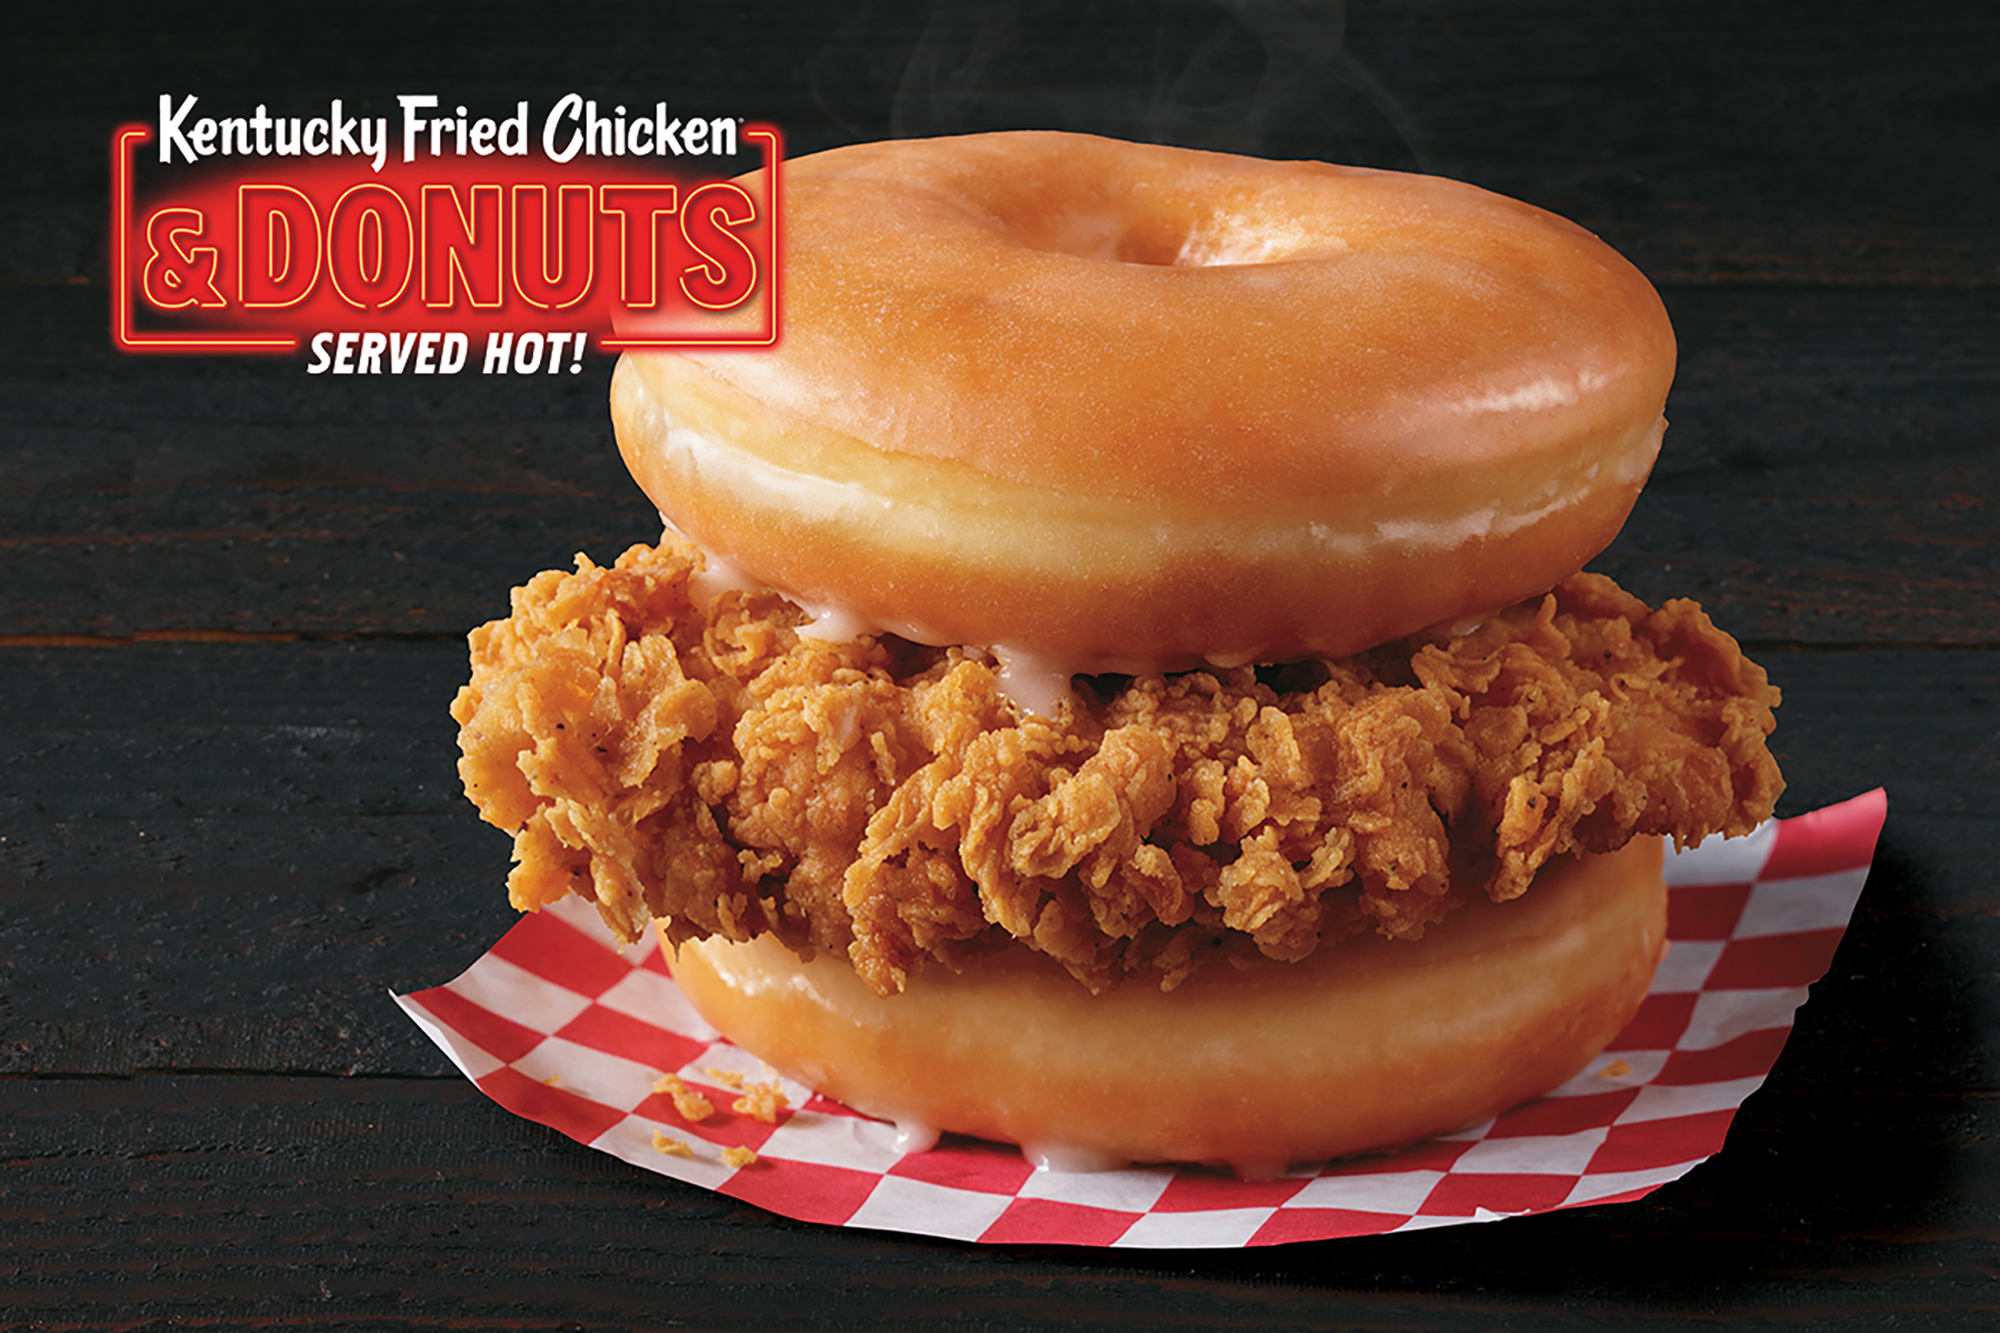 A fried chicken filet between two doughnuts on a red-and-white checkered piece of paper.